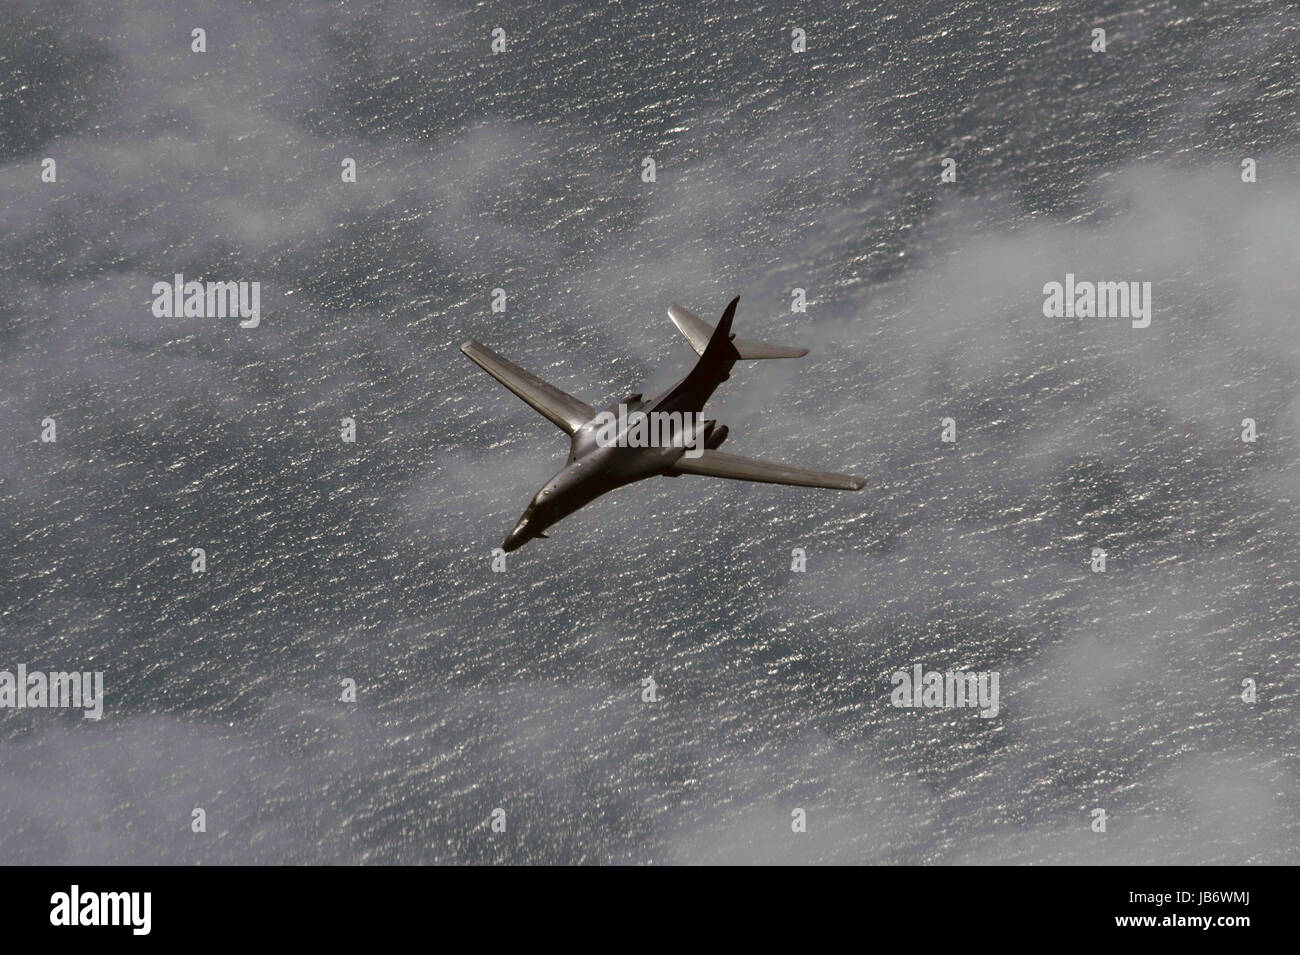 Baltic Sea. 09th June, 2017. A U.S. Air Force B-1B Lancer bomber from the 28th Bomb Wing during exercise BALTOPS - Stock Image